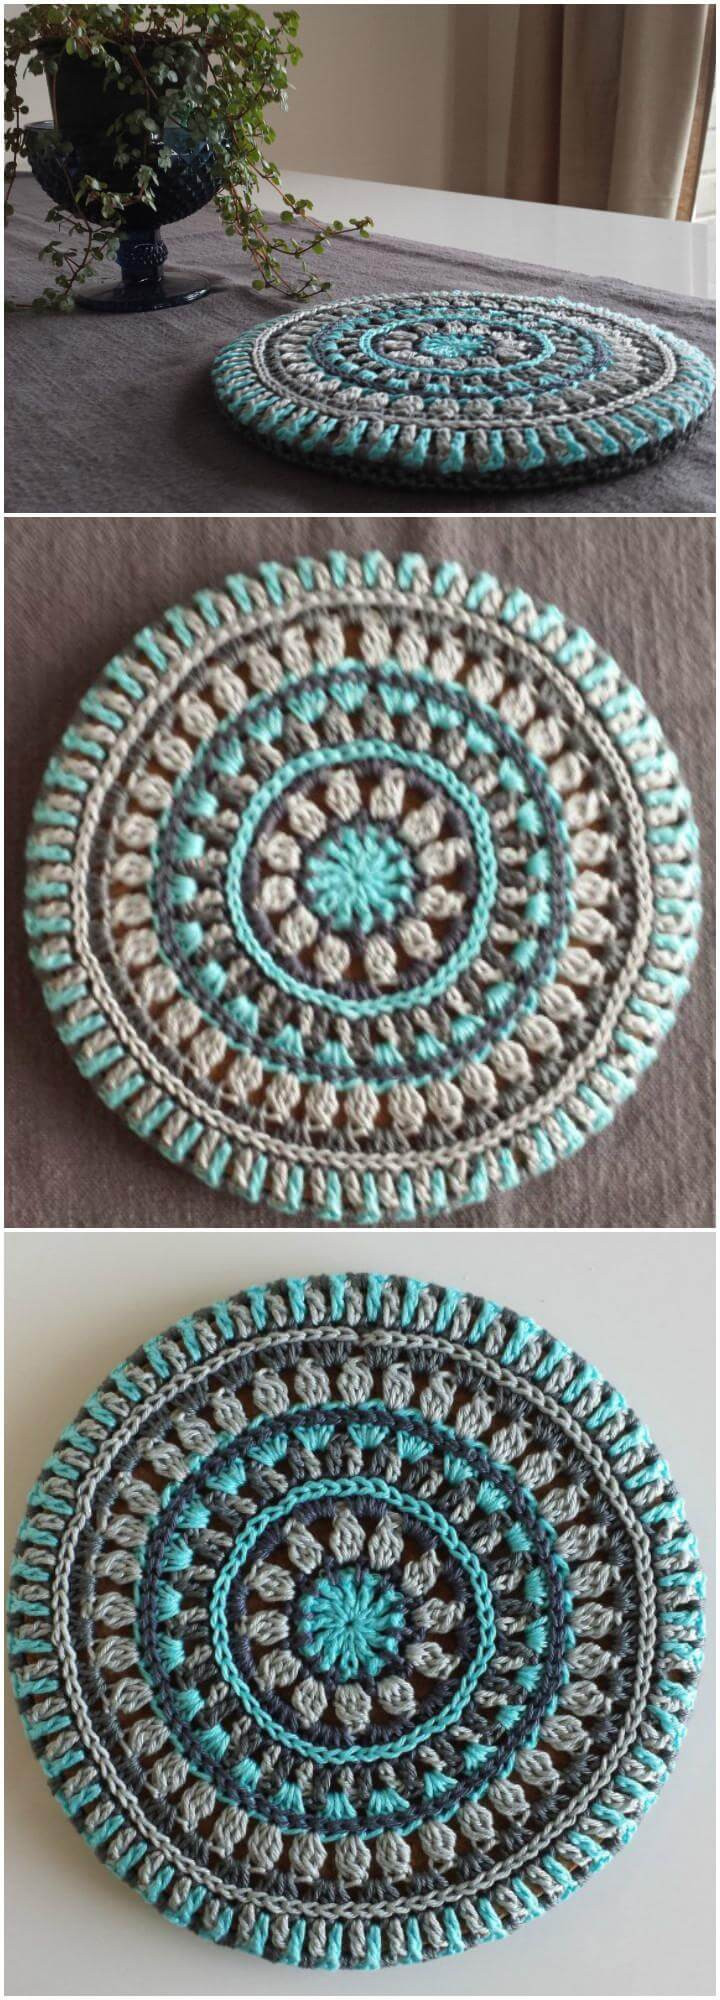 Free Mandala Crochet Patterns Luxury 60 Free Crochet Mandala Patterns Page 3 Of 12 Diy Of Innovative 45 Models Free Mandala Crochet Patterns